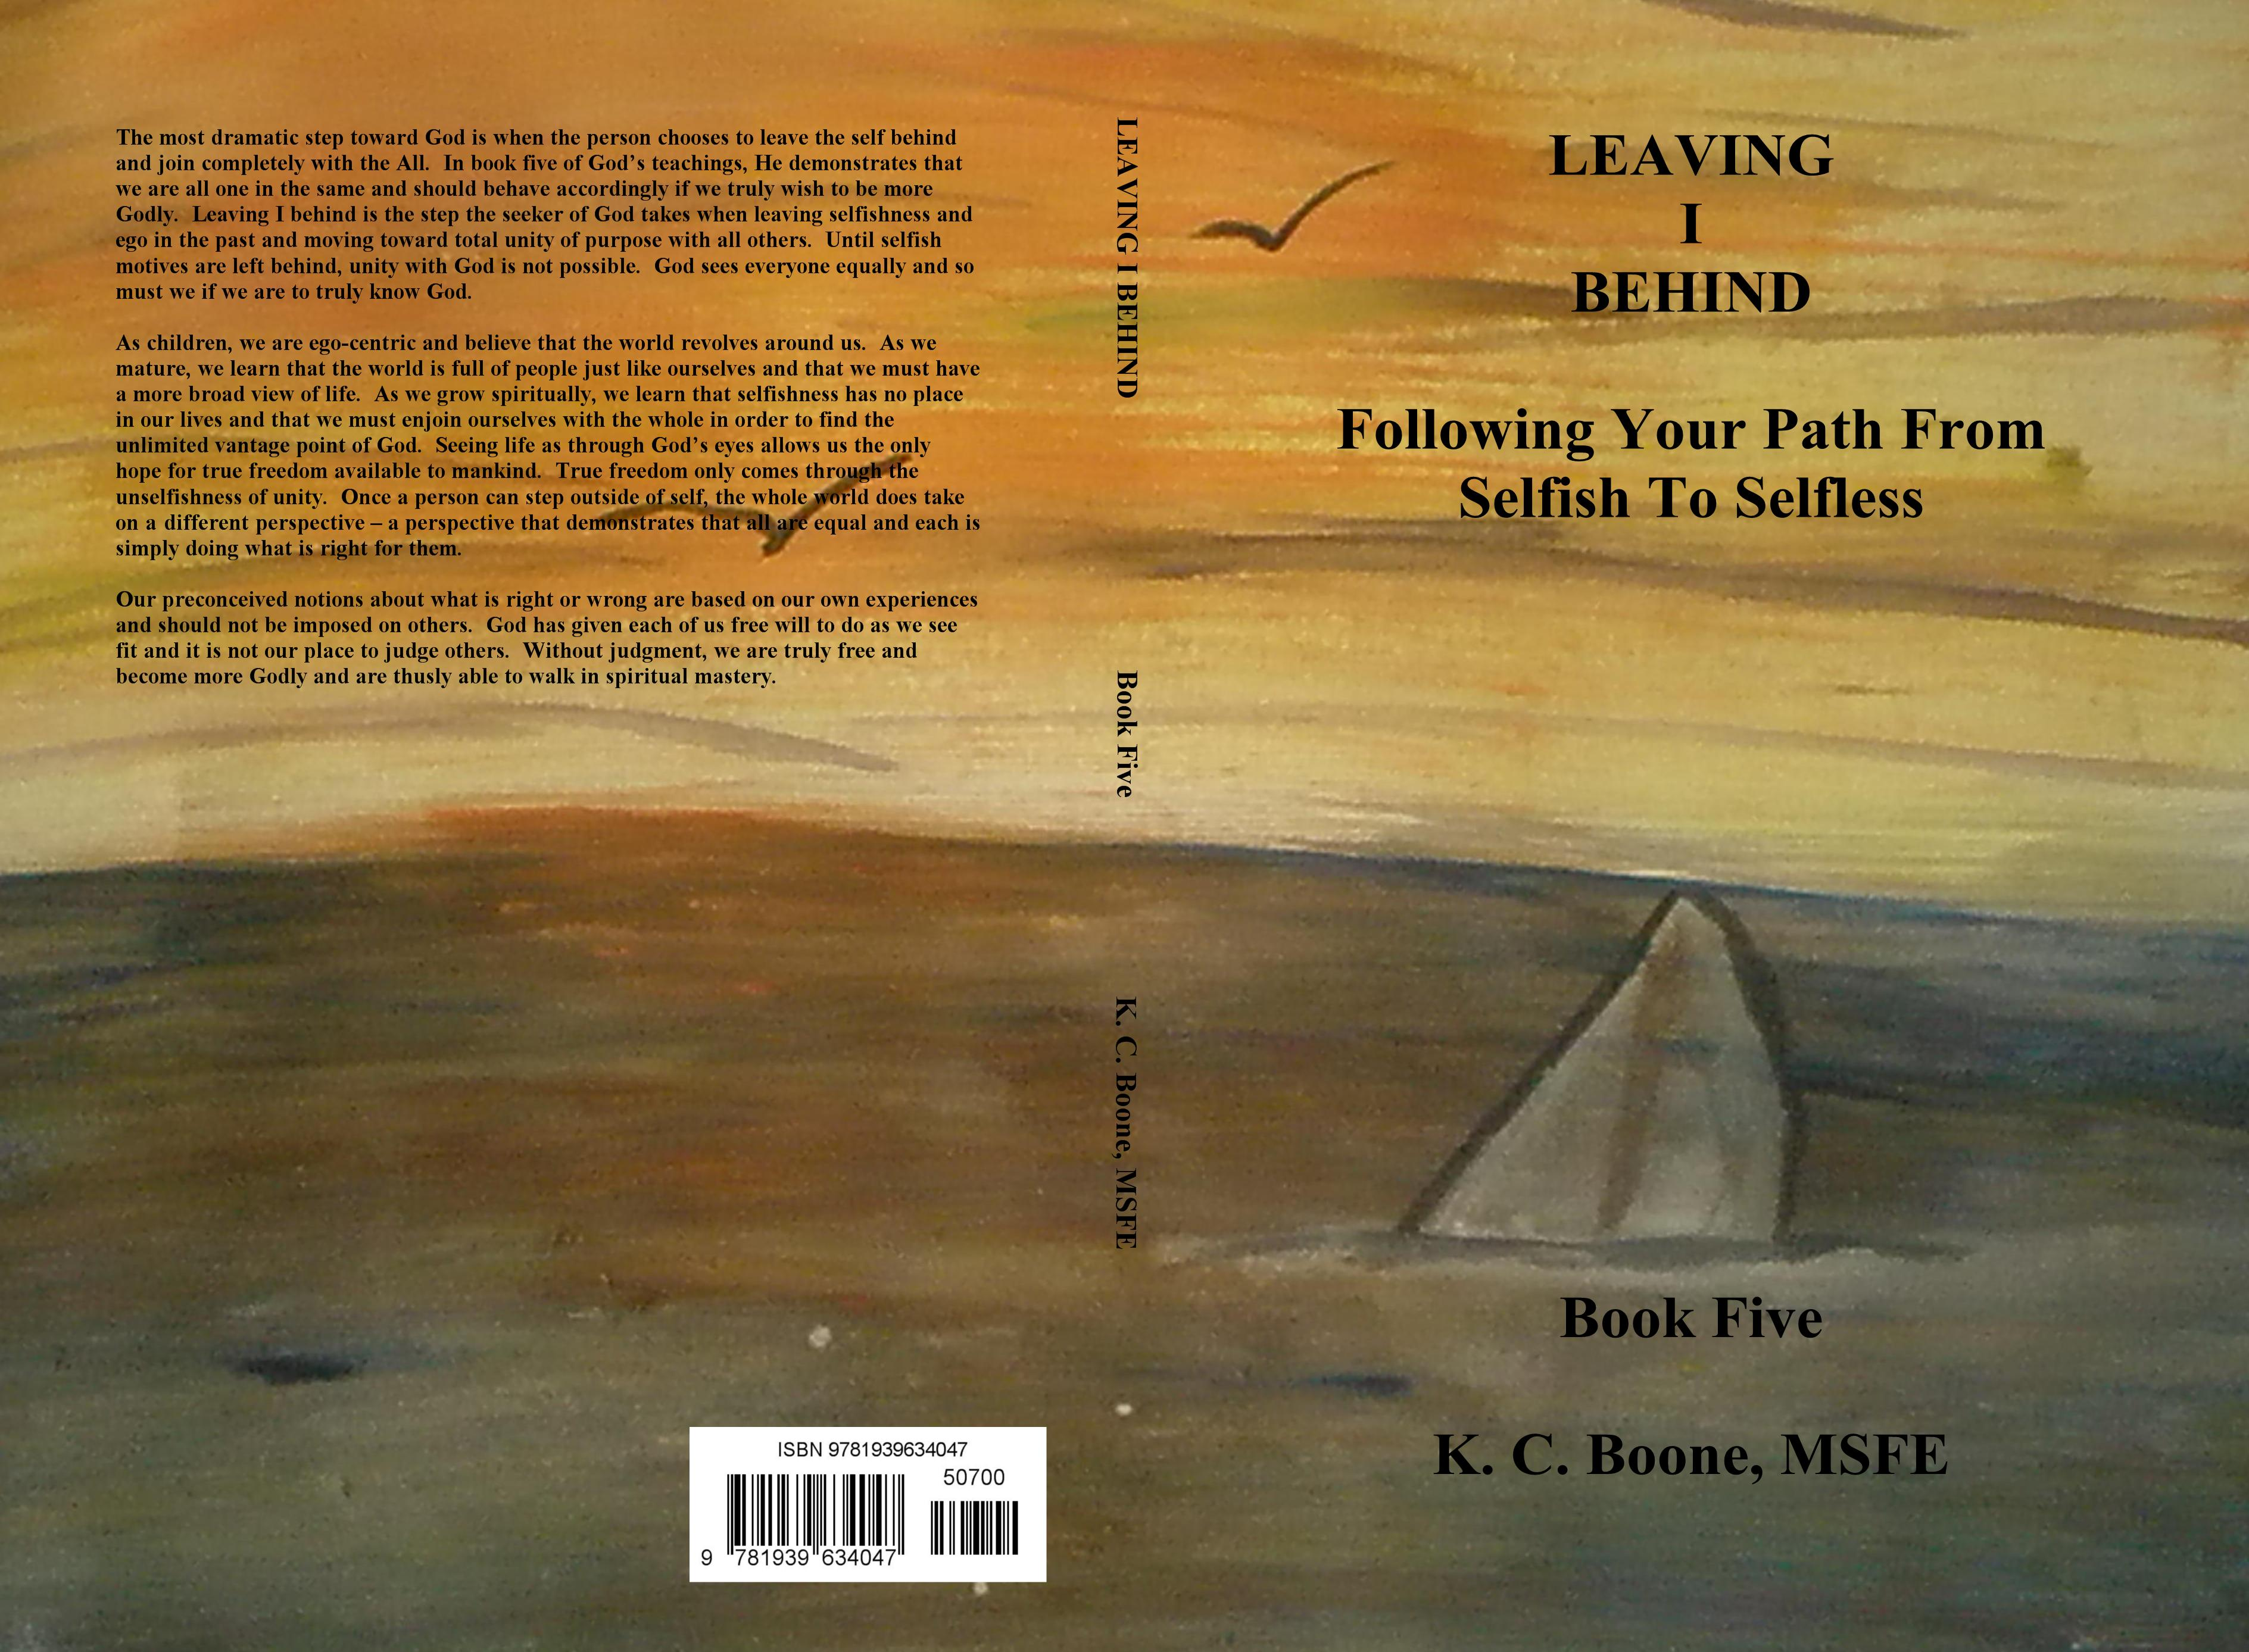 LEAVING I BEHIND Following Your Path From Selfish To Selfless cover image